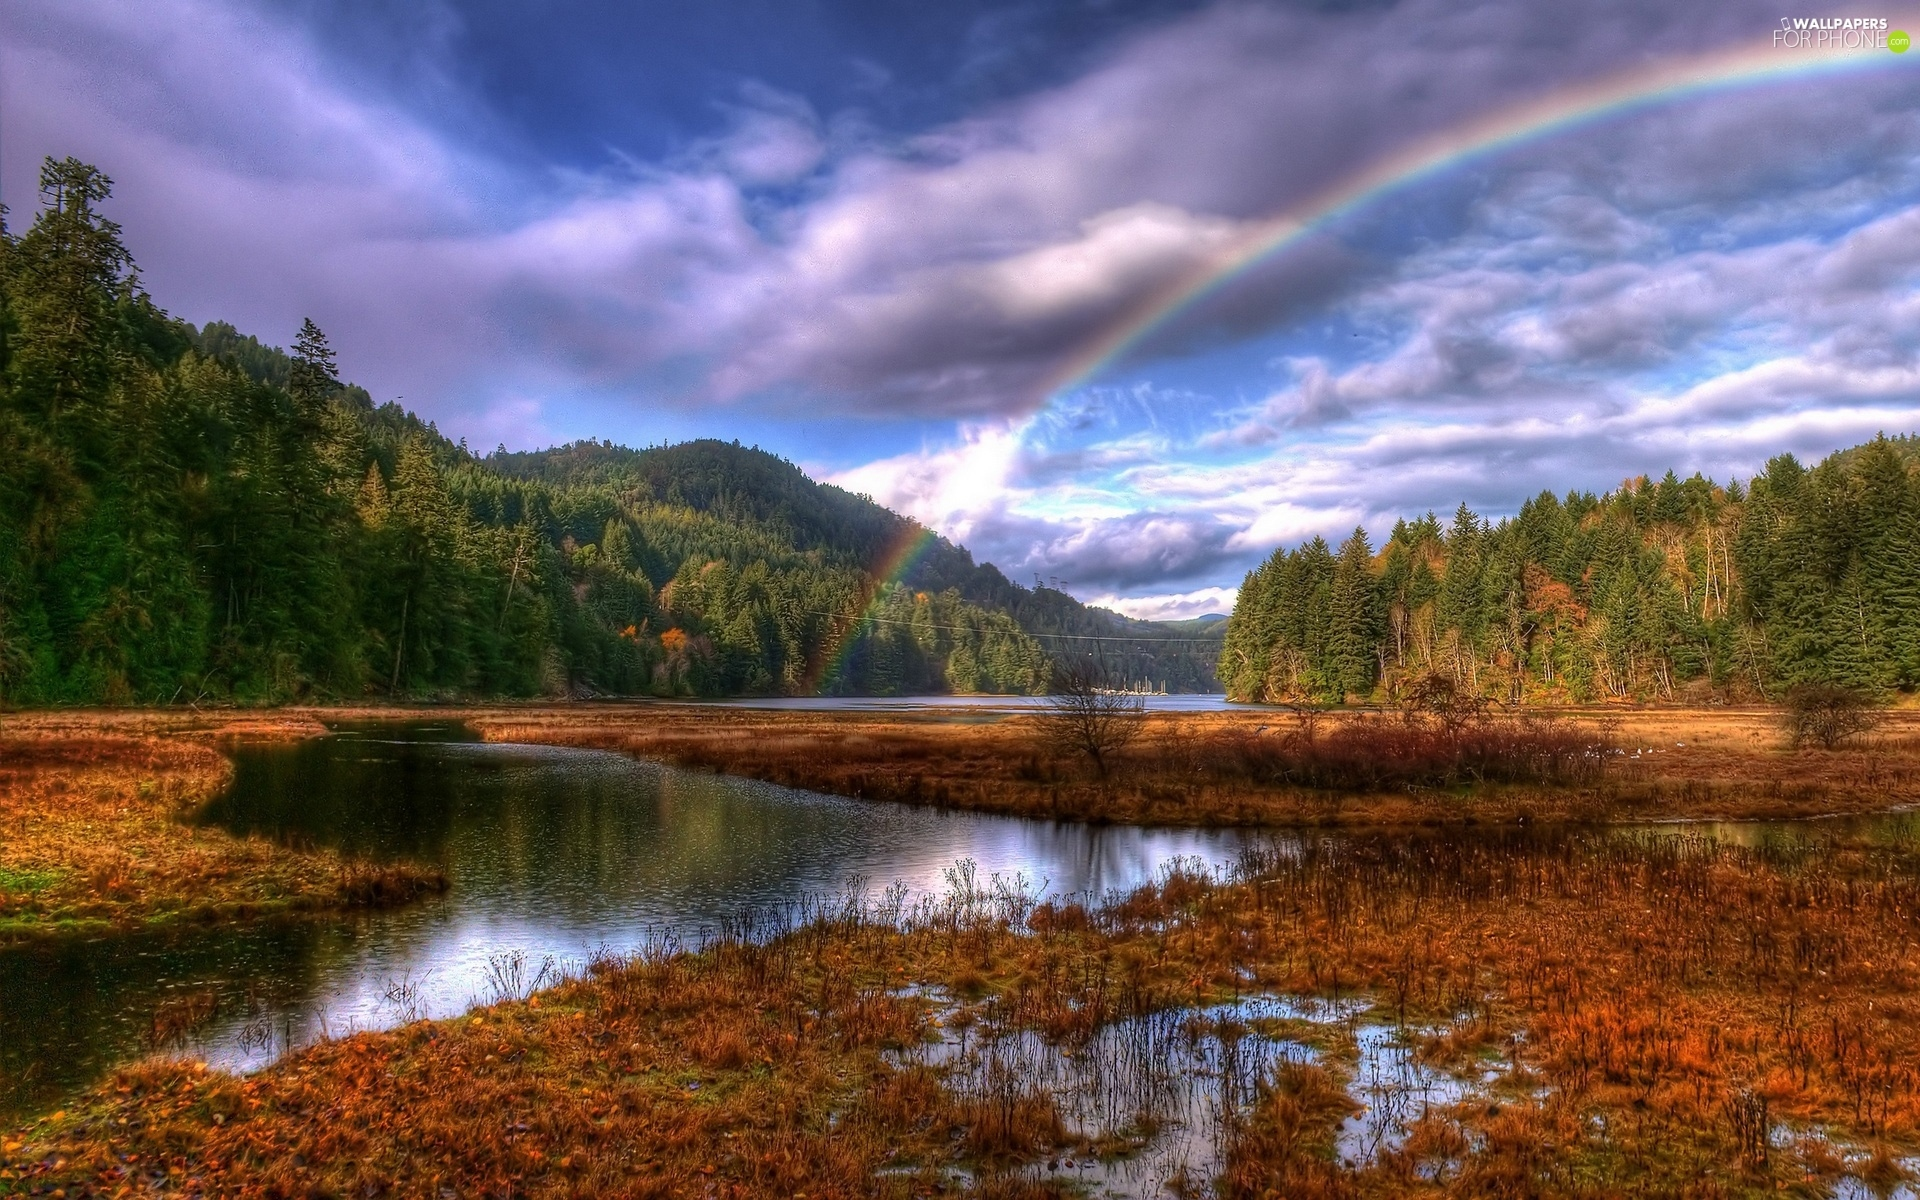 clouds, Great Rainbows, marshland, woods, River